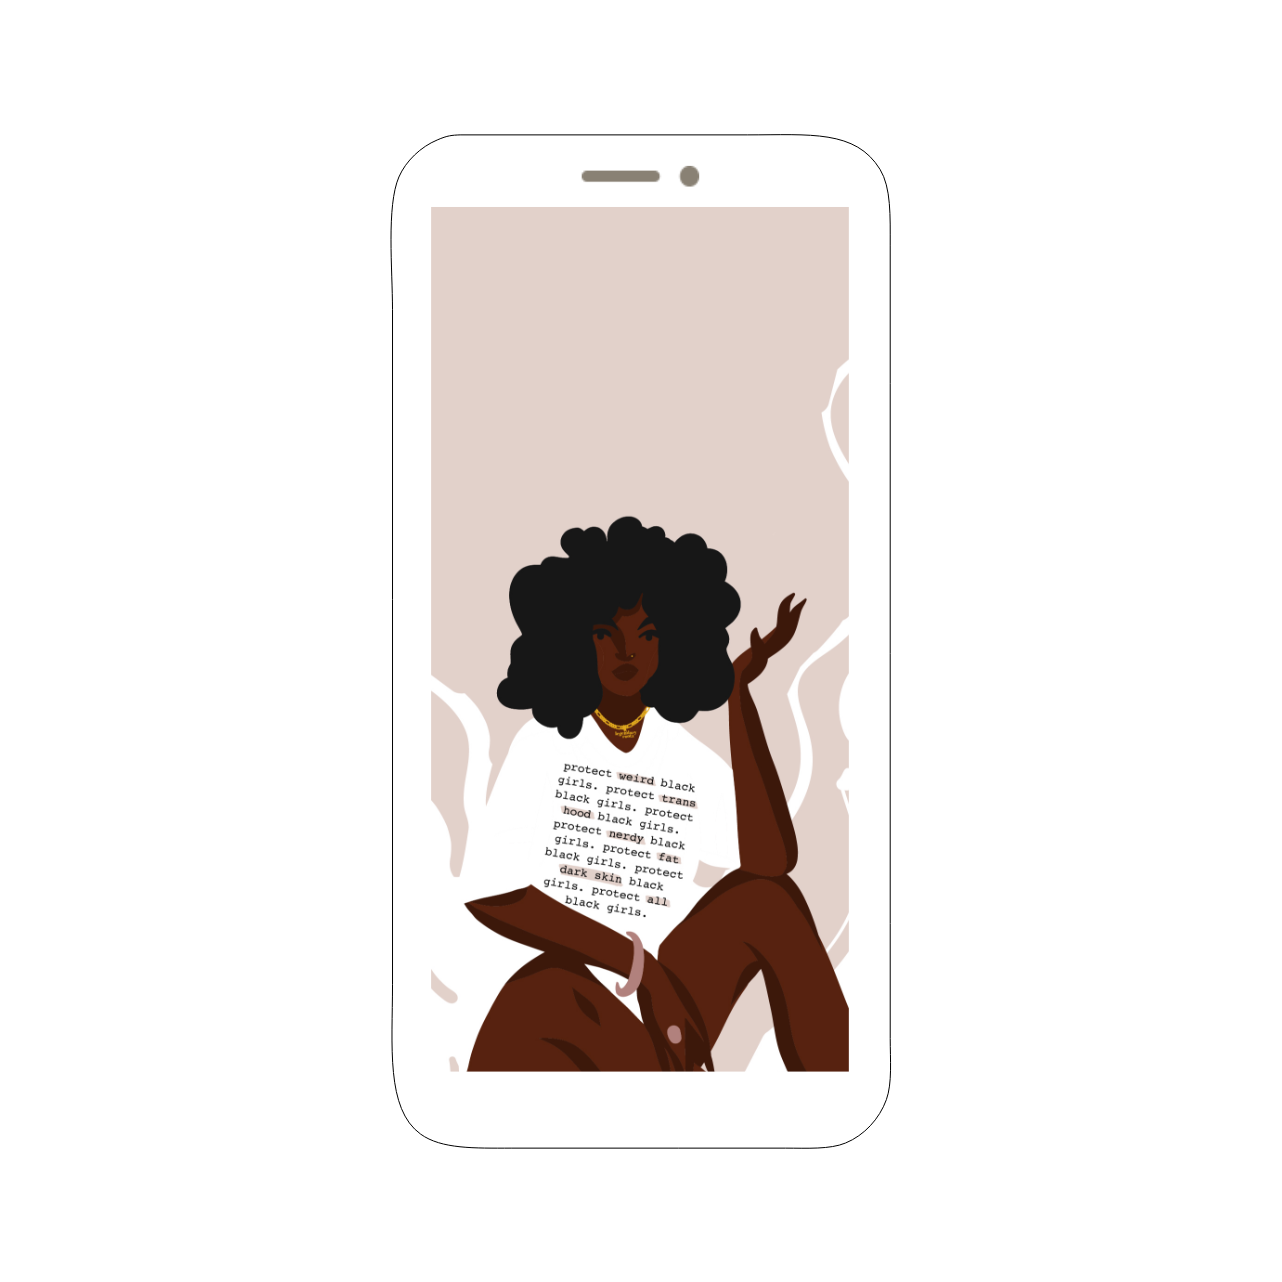 Protect All Black Girls | Wallpaper Pack